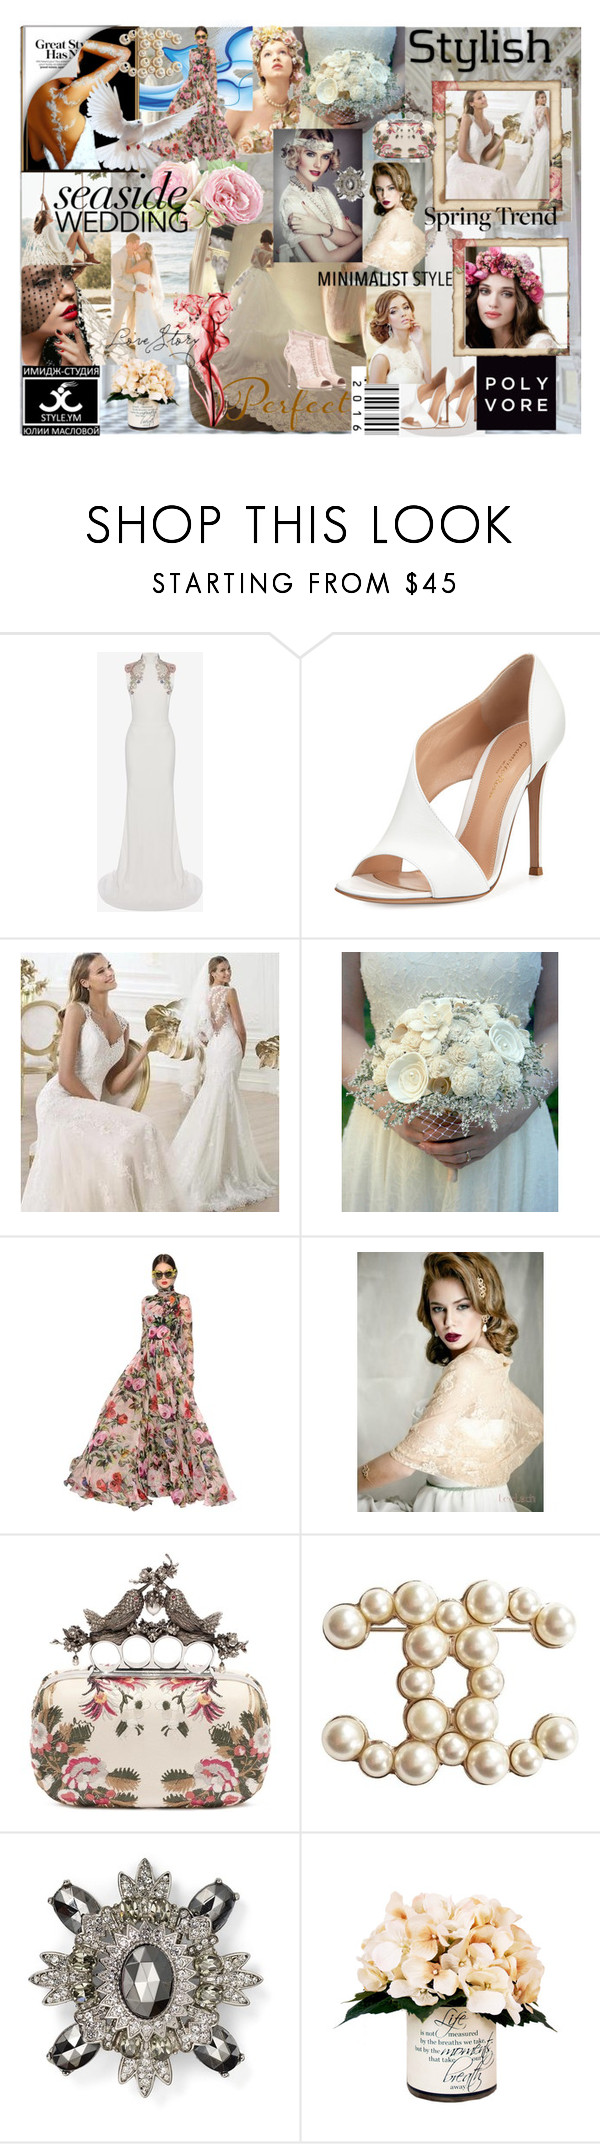 """make wedding style by Yuliya Maslova & Image-studio StyleYM"" by yuliaexe ❤ liked on Polyvore featuring Alexander McQueen, Gianvito Rossi, UGG Australia, Beautiful Wedding, Dolce&Gabbana, Noa Vider, Chanel, Kenneth Jay Lane and Creative Displays"